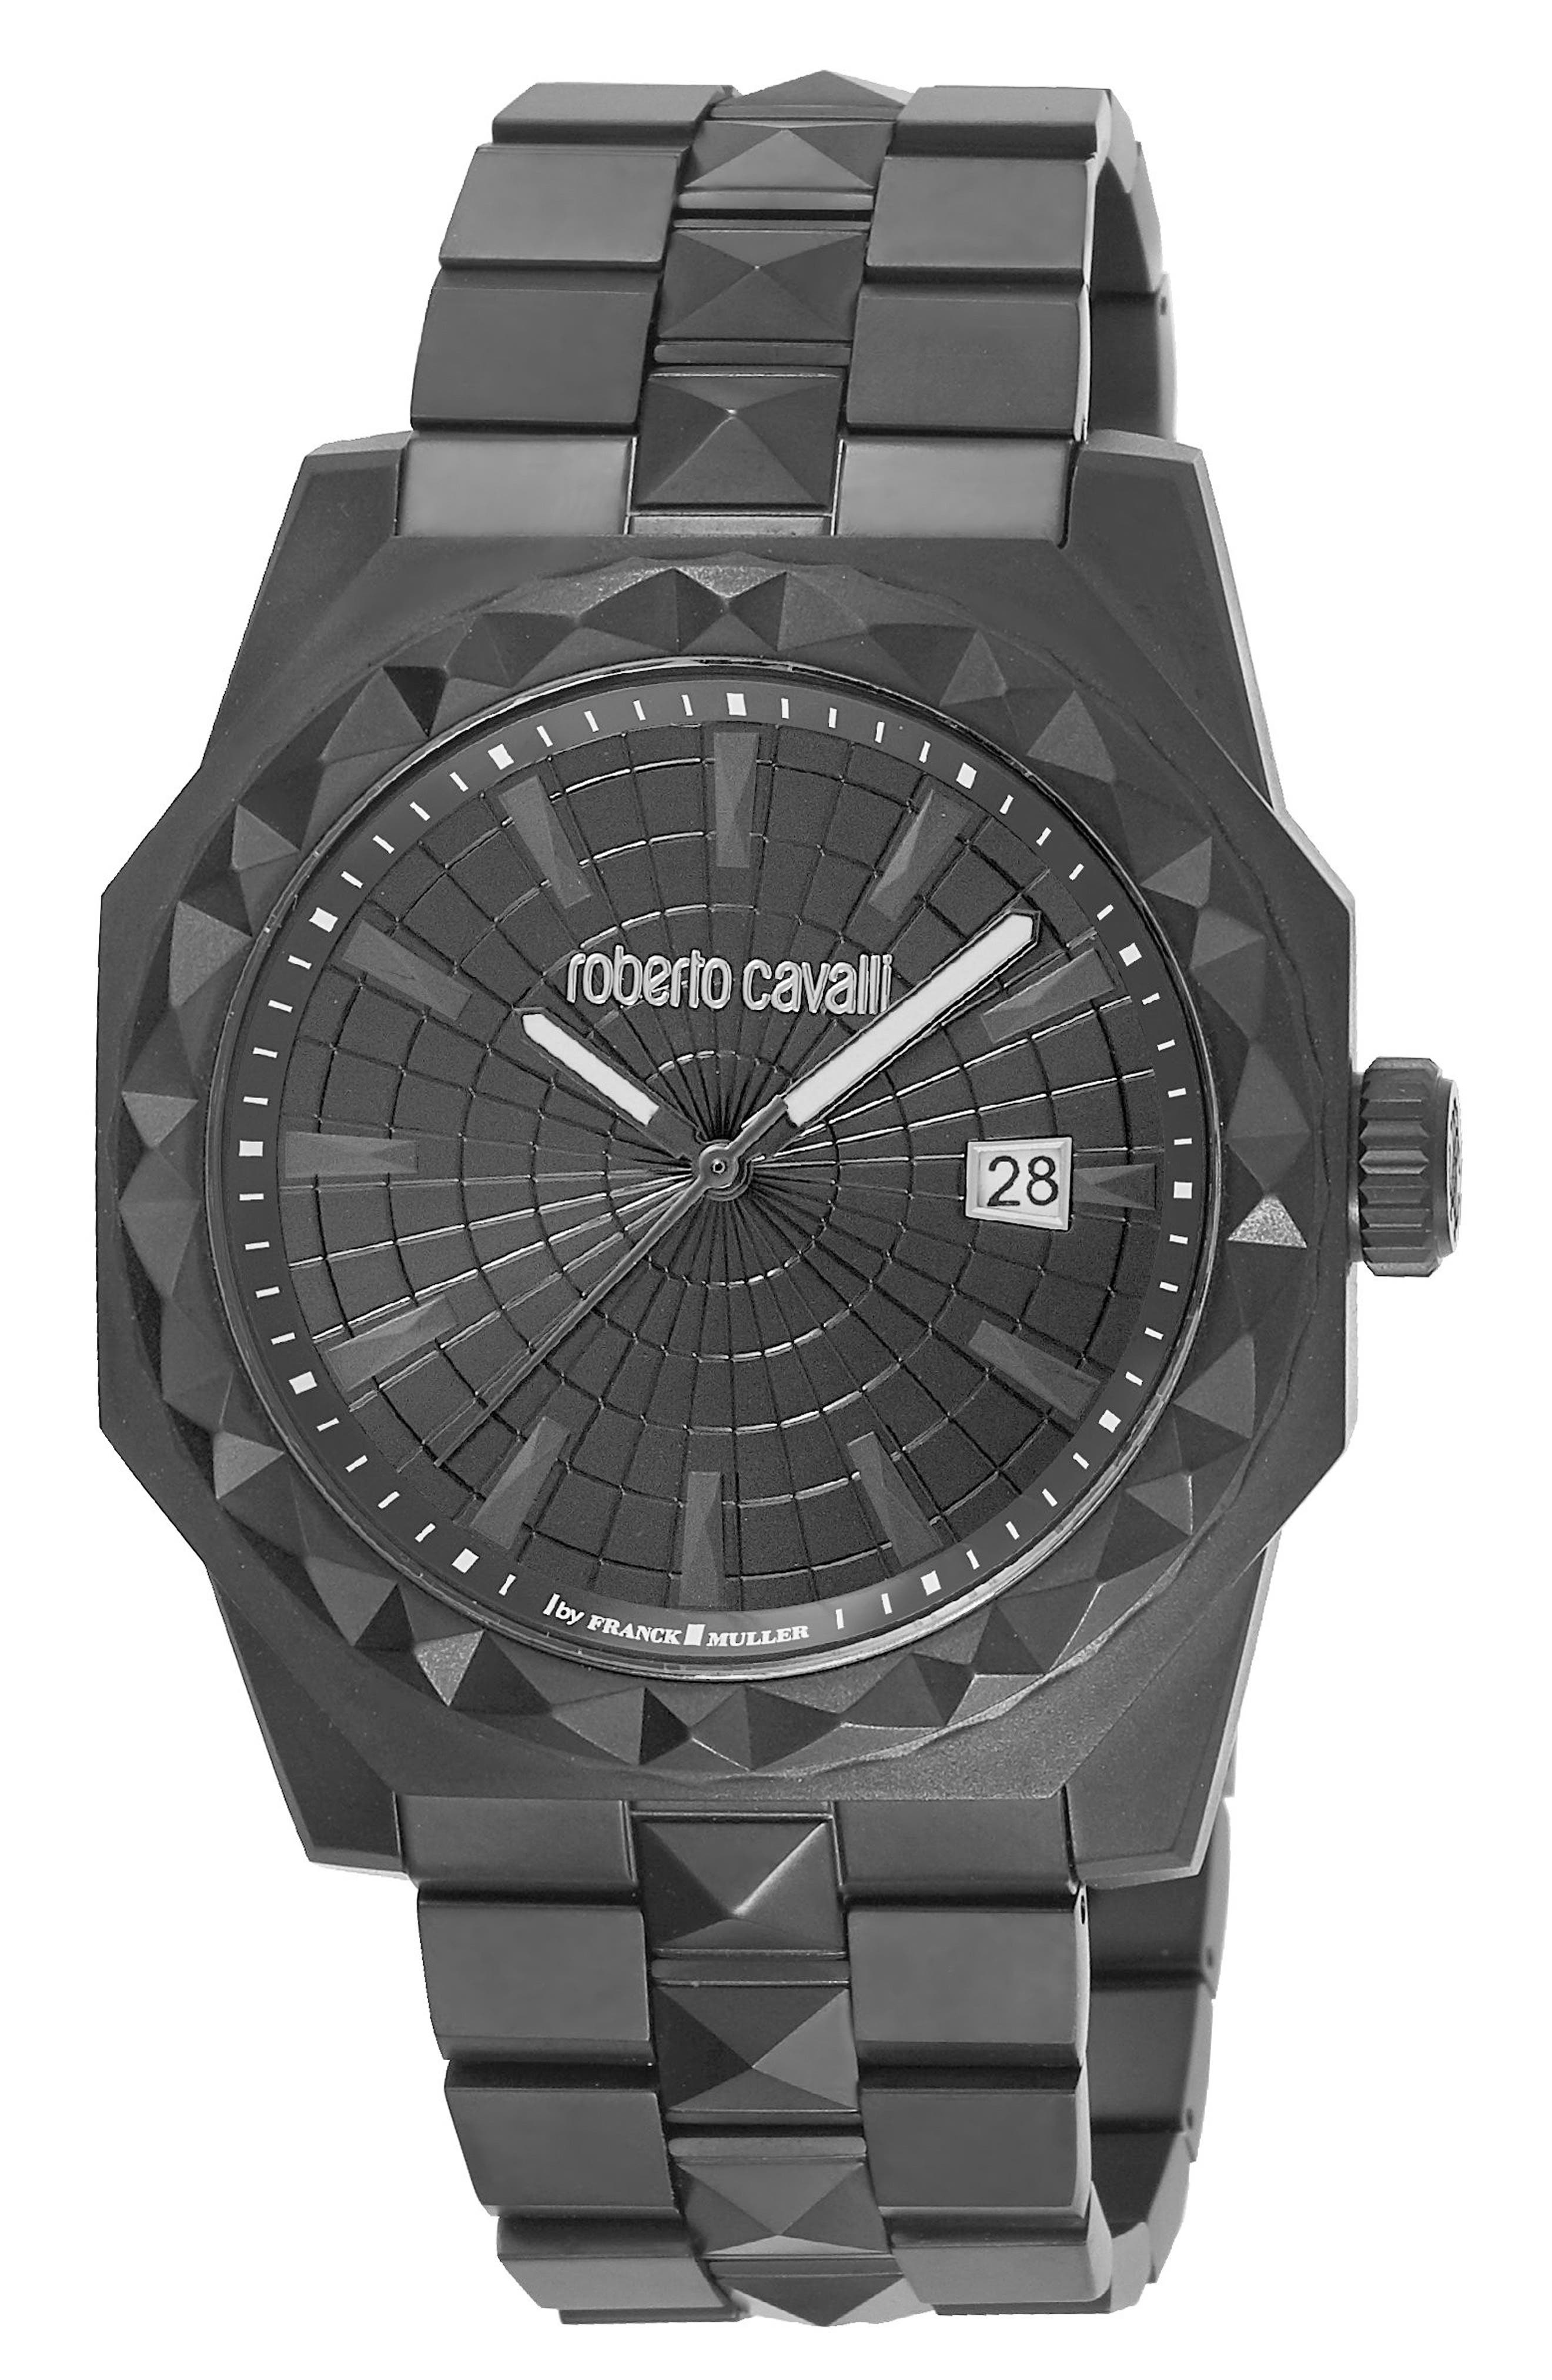 Main Image - Roberto Cavalli by Franck Muller Pyramid Bracelet Watch, 43mm